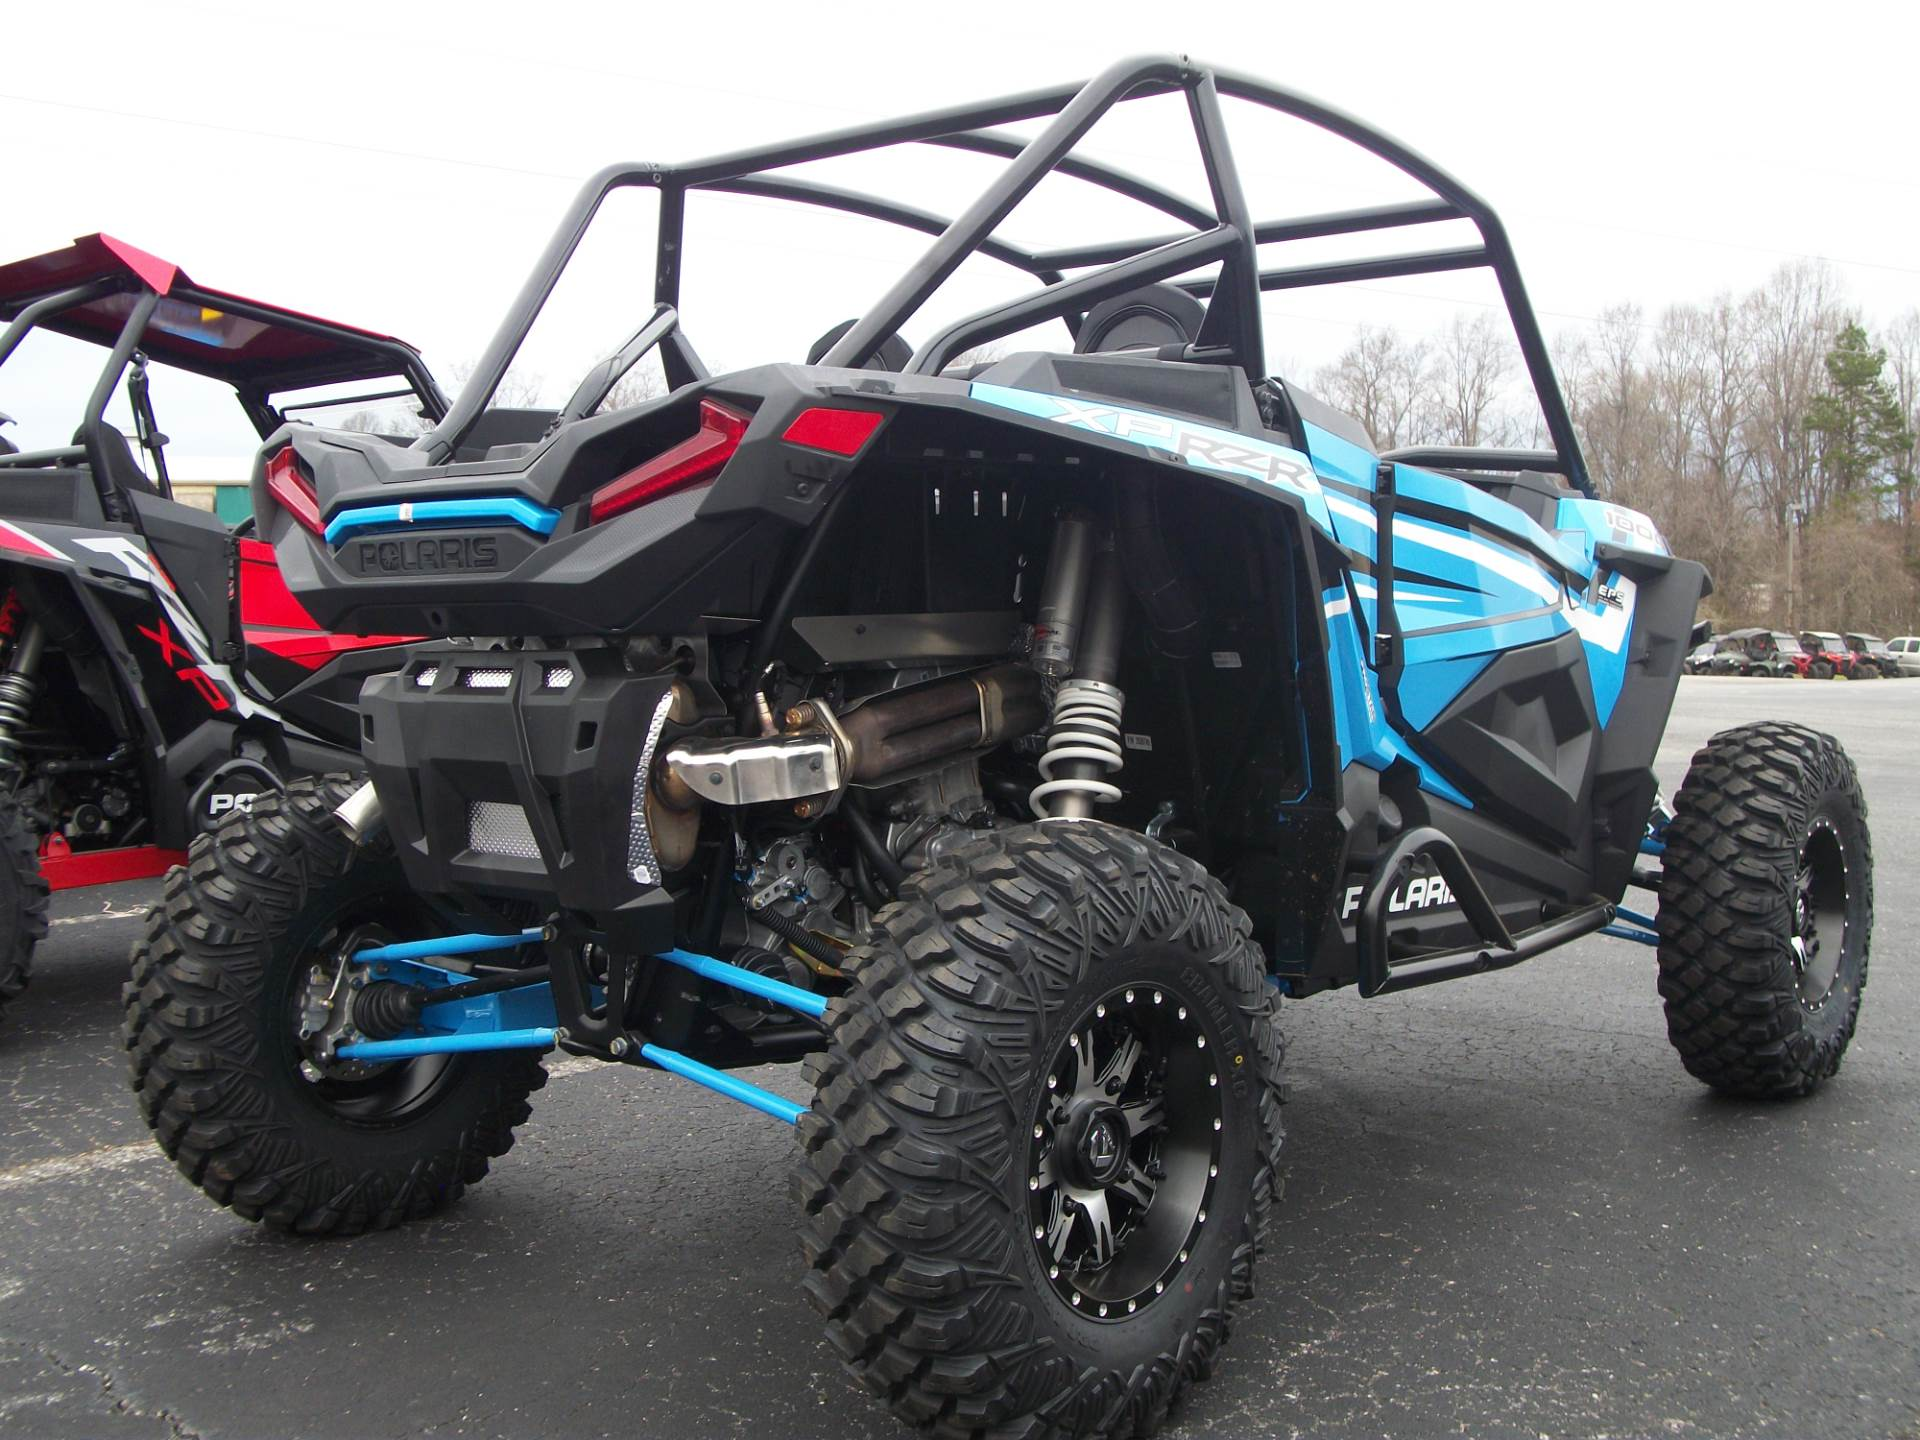 2019 Polaris RZR XP 1000 in Statesville, North Carolina - Photo 3